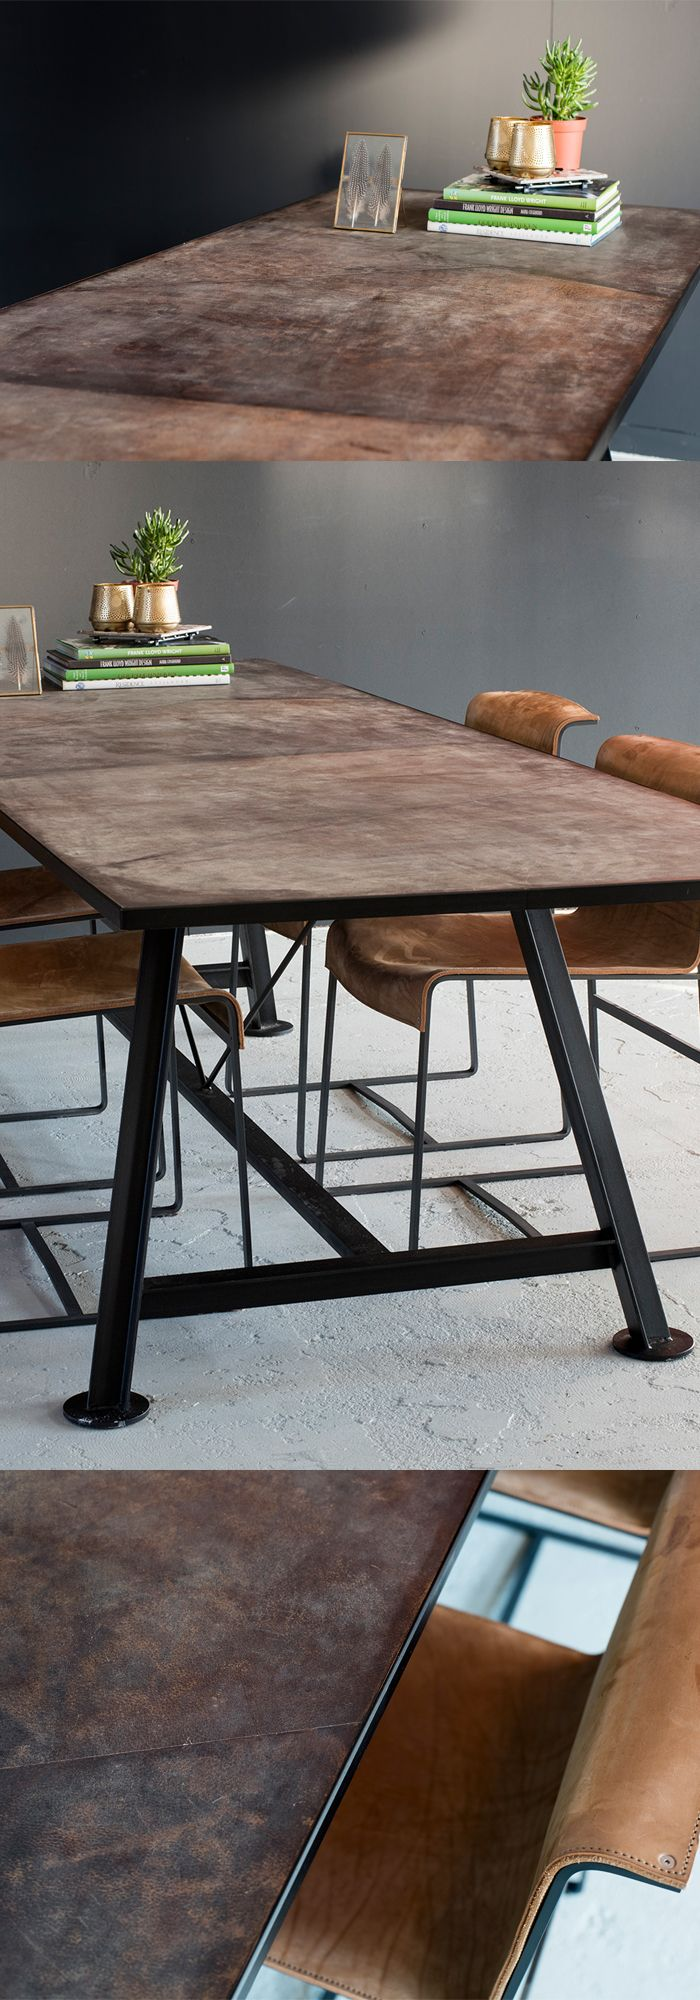 IN STOCK Brown Leather Table #brownleathertable Design by VanGijs